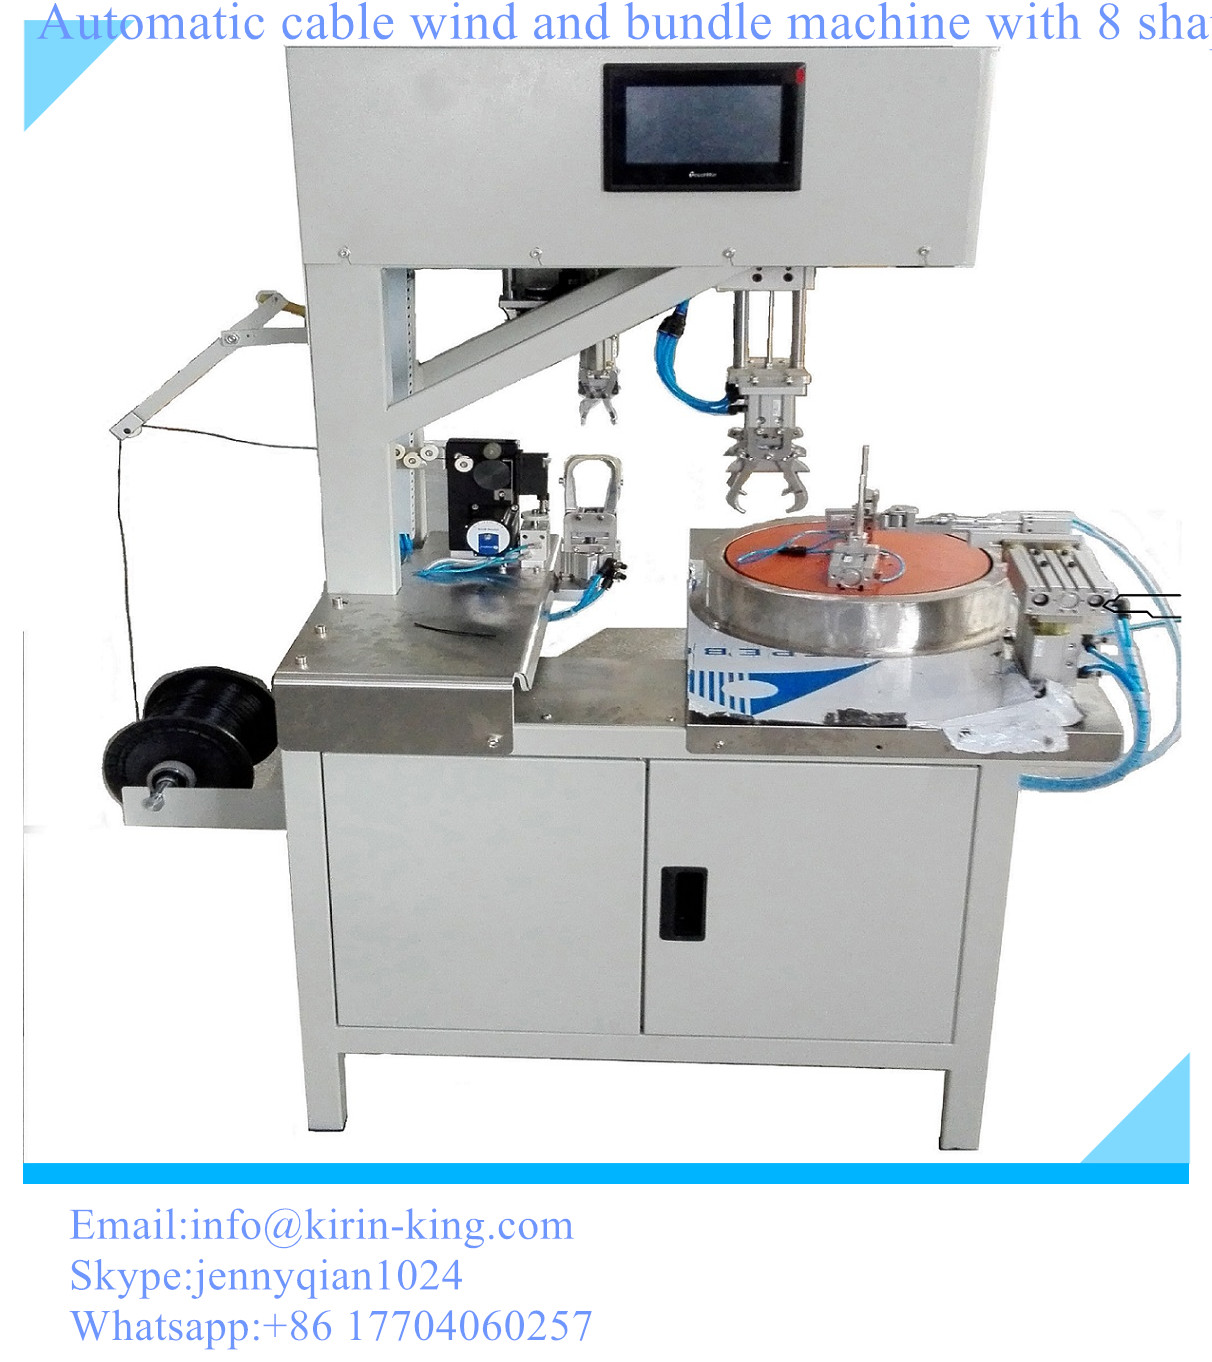 Fully-auto Winding and Tying Machine with 8 shape